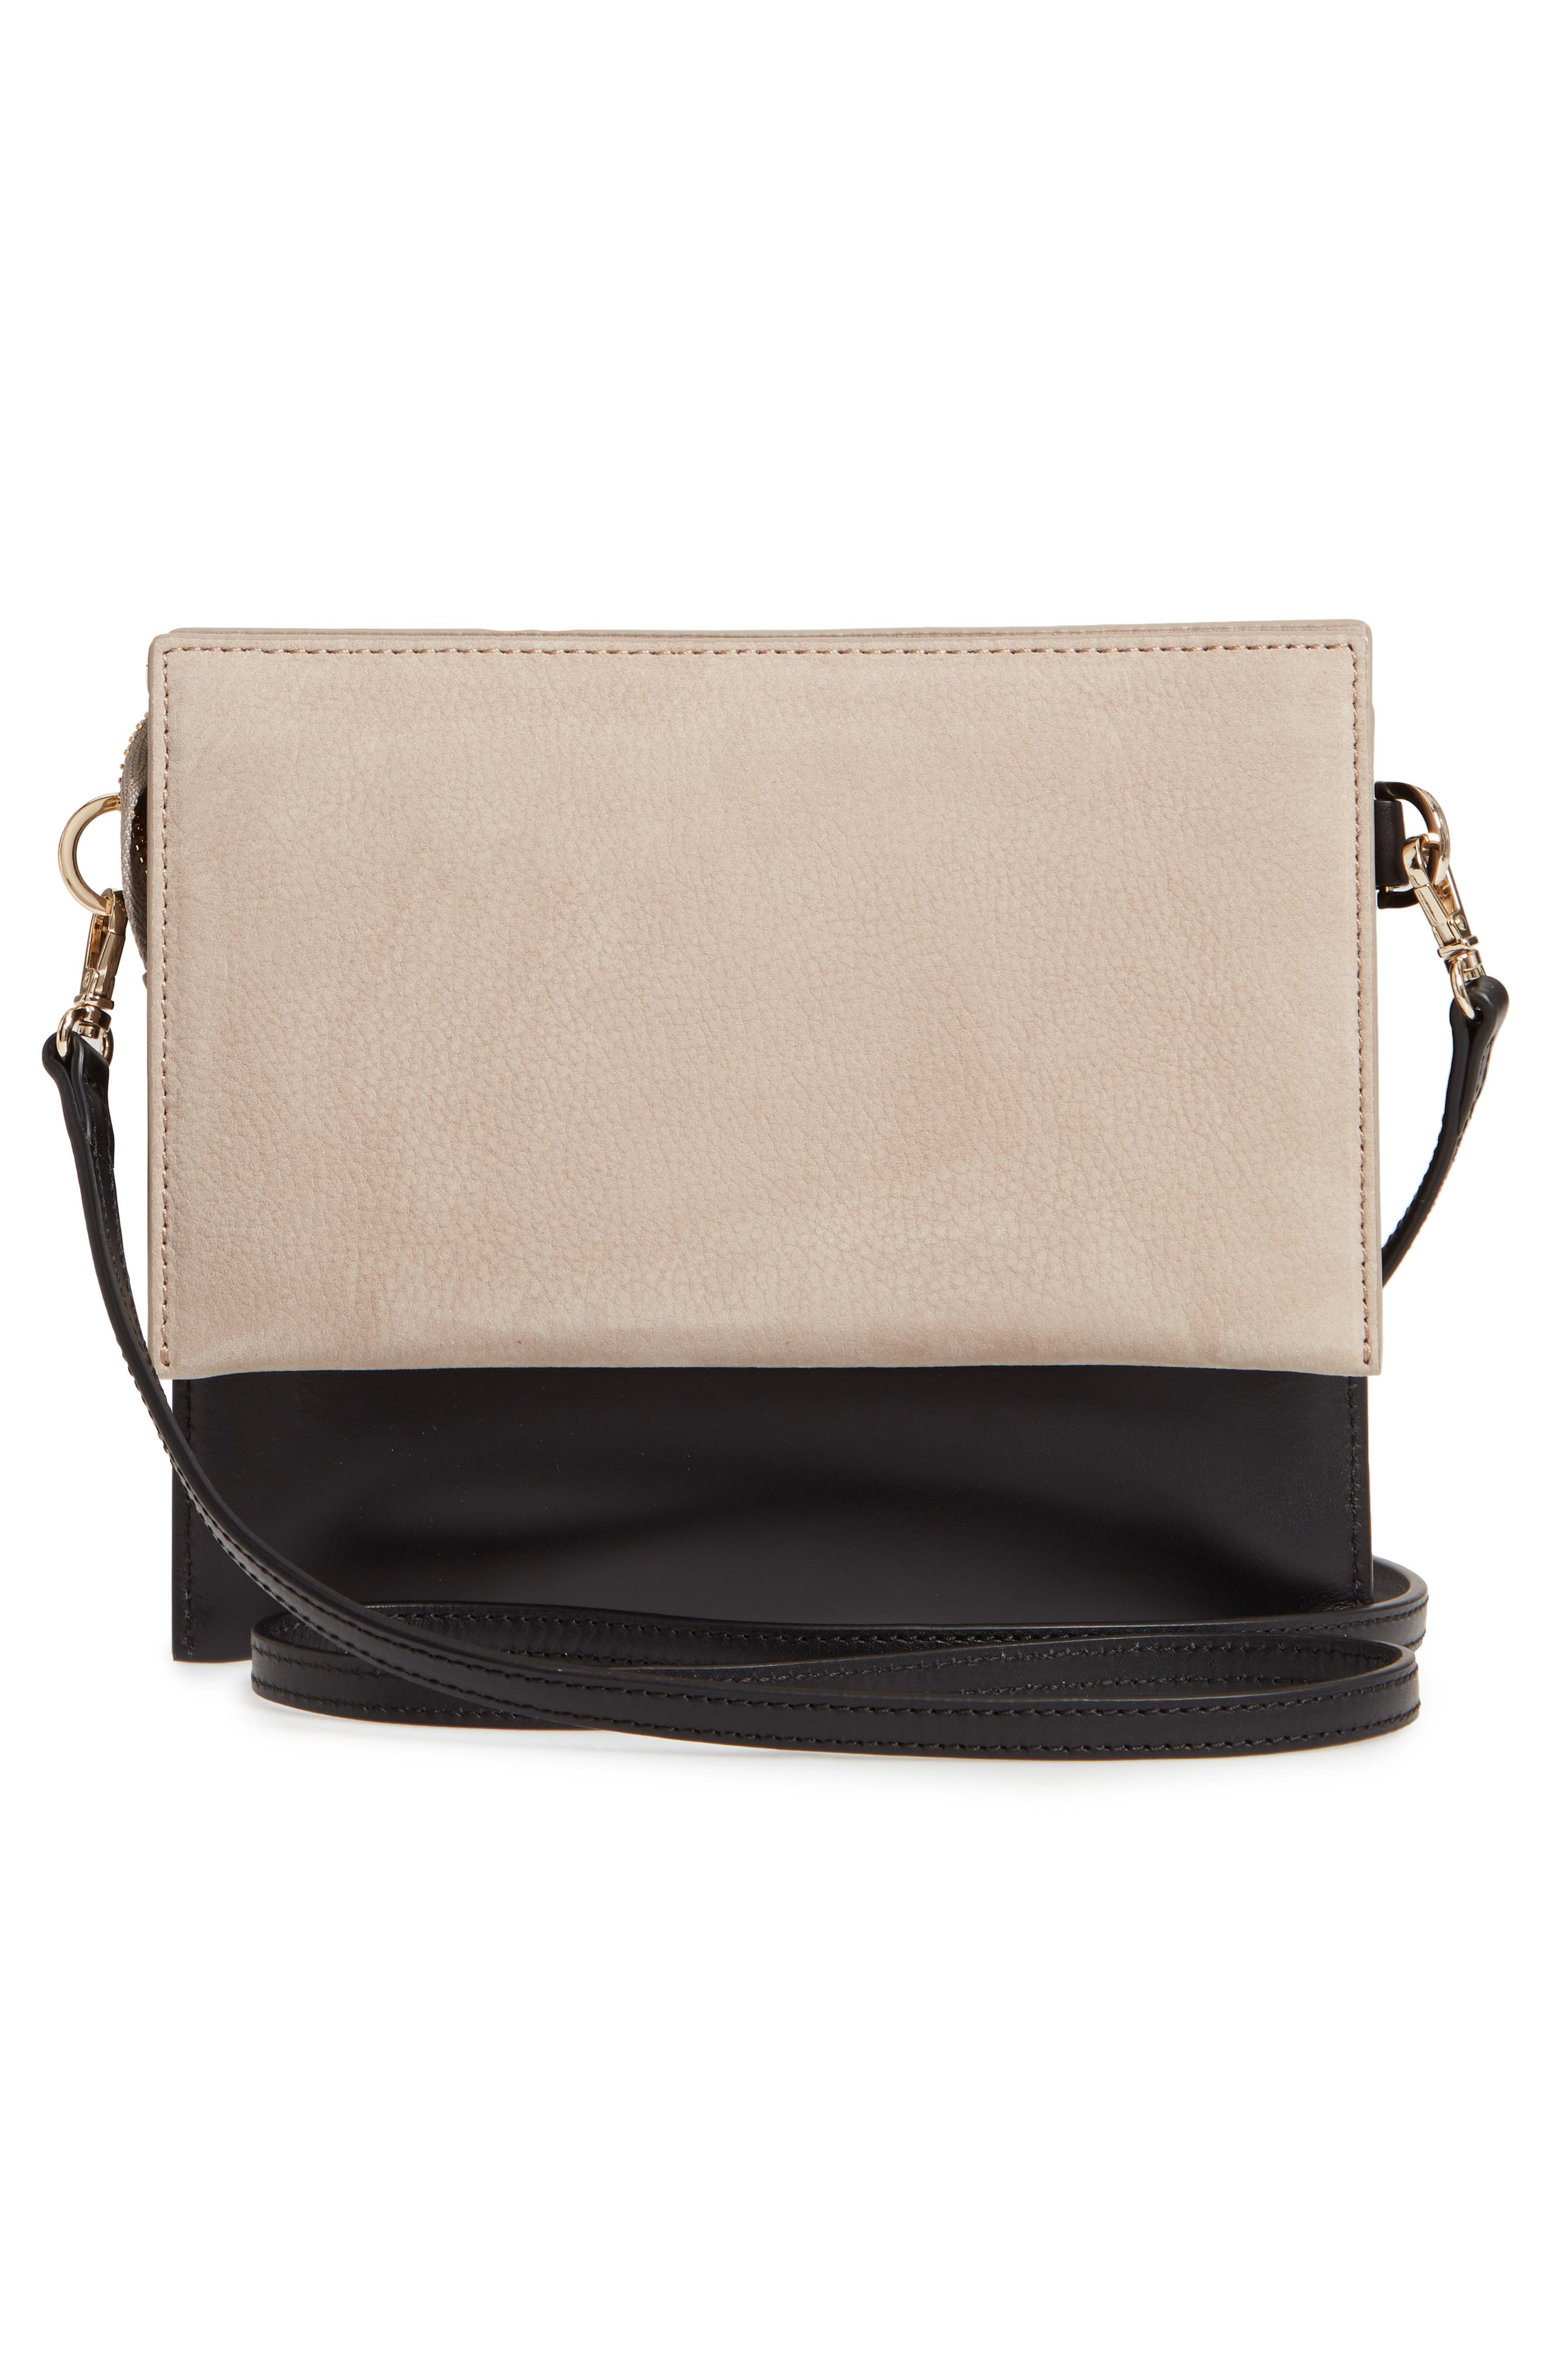 Triple Leather & Suede Crossbody Bag,                             Alternate thumbnail 3, color,                             TAUPE/ TRUE BLACK